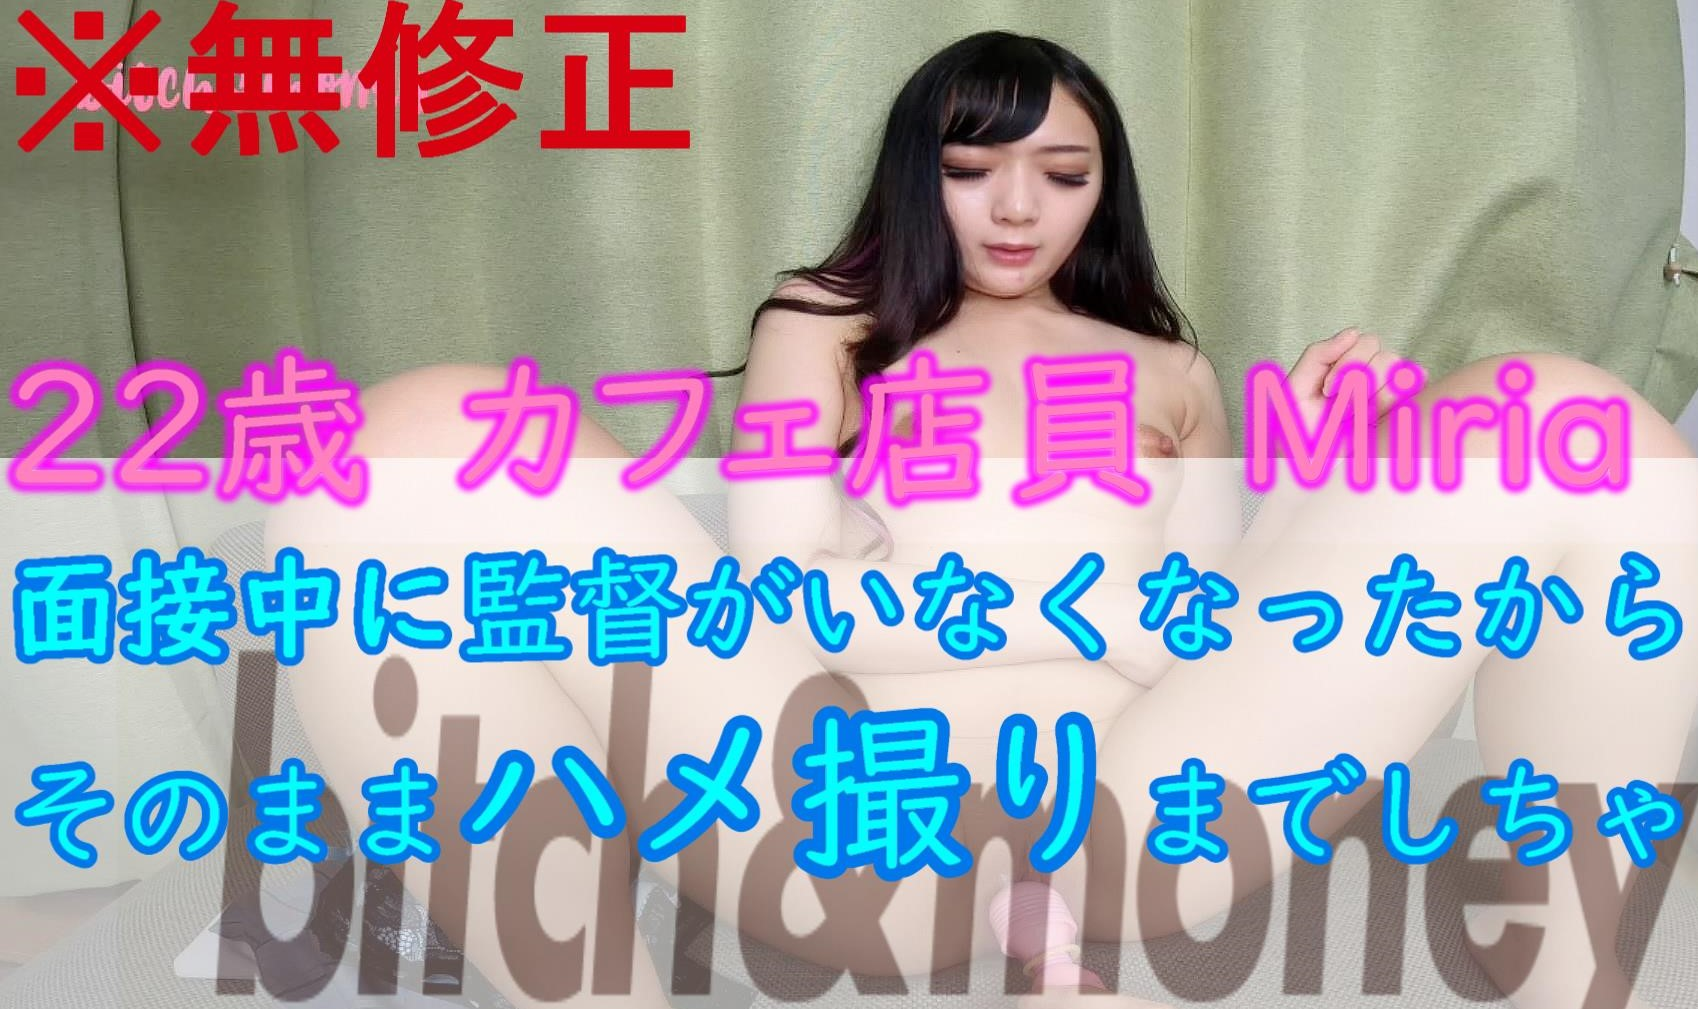 fc2 ppv 1535078 - FC2-PPV 1535078 Uncensored Personal shooting Bitch amp imitation-limited amateur 22-year-old cafe cl...